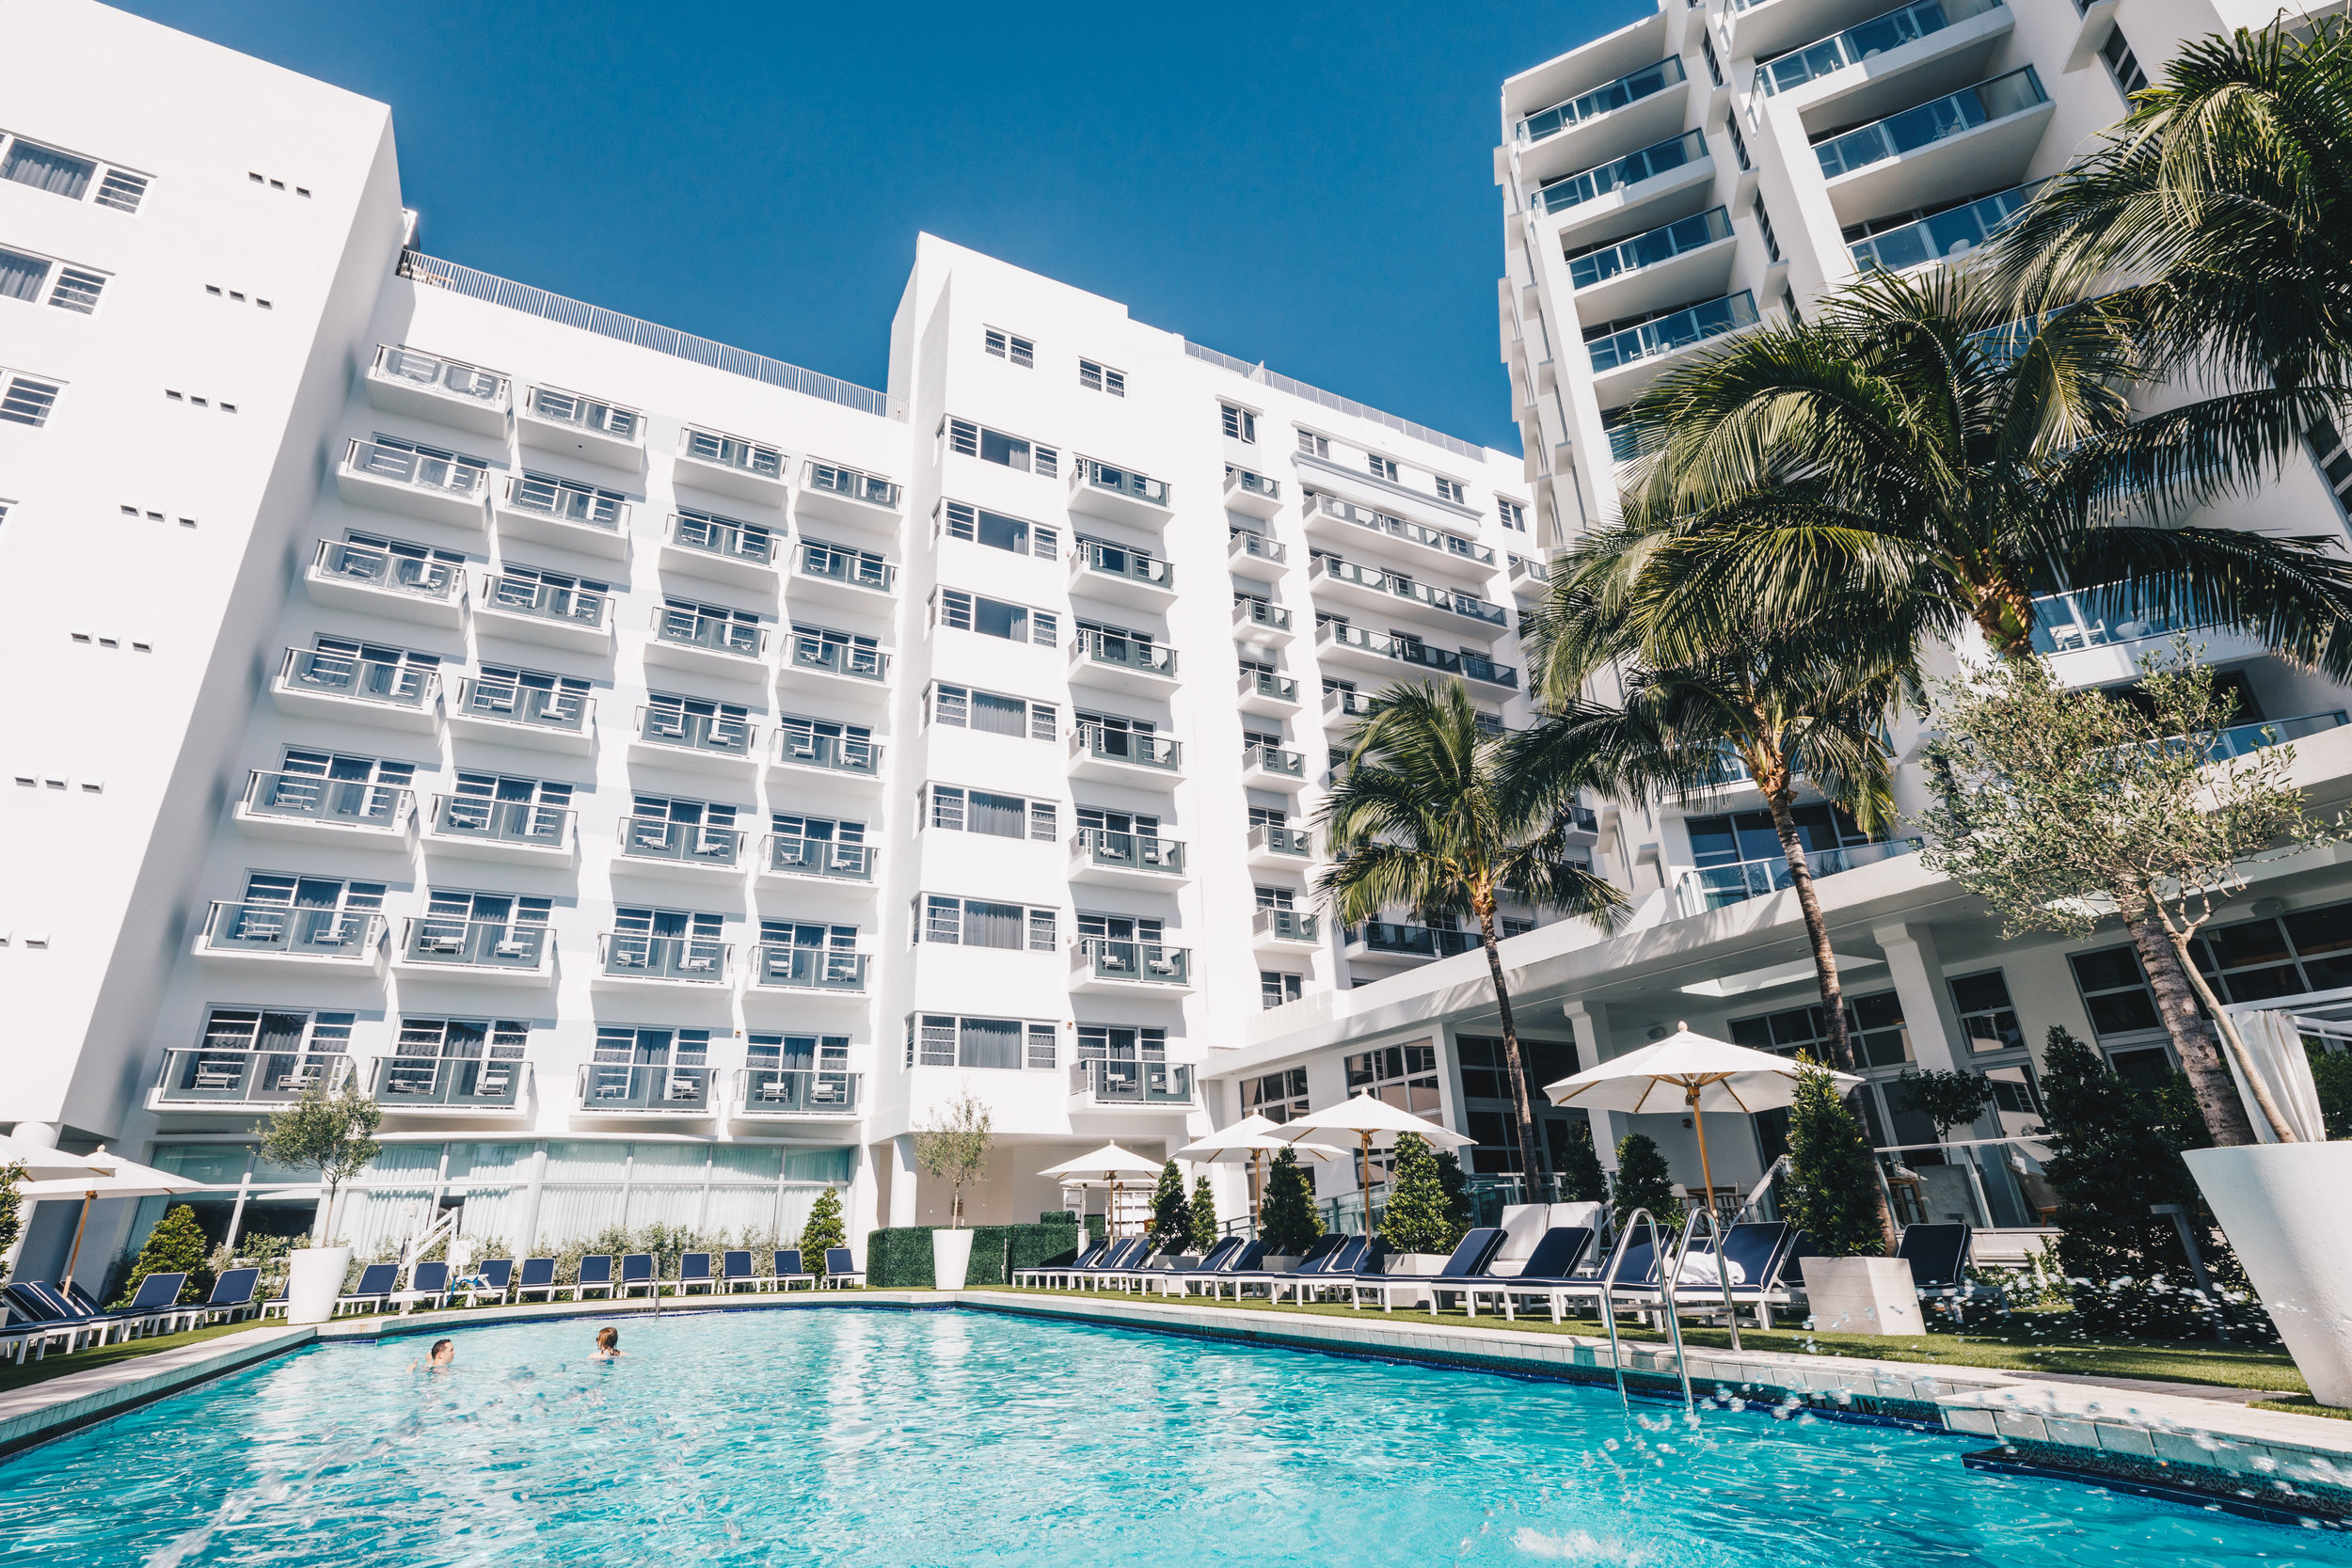 Cadillac Hotel-Miami Main Pool.jpg